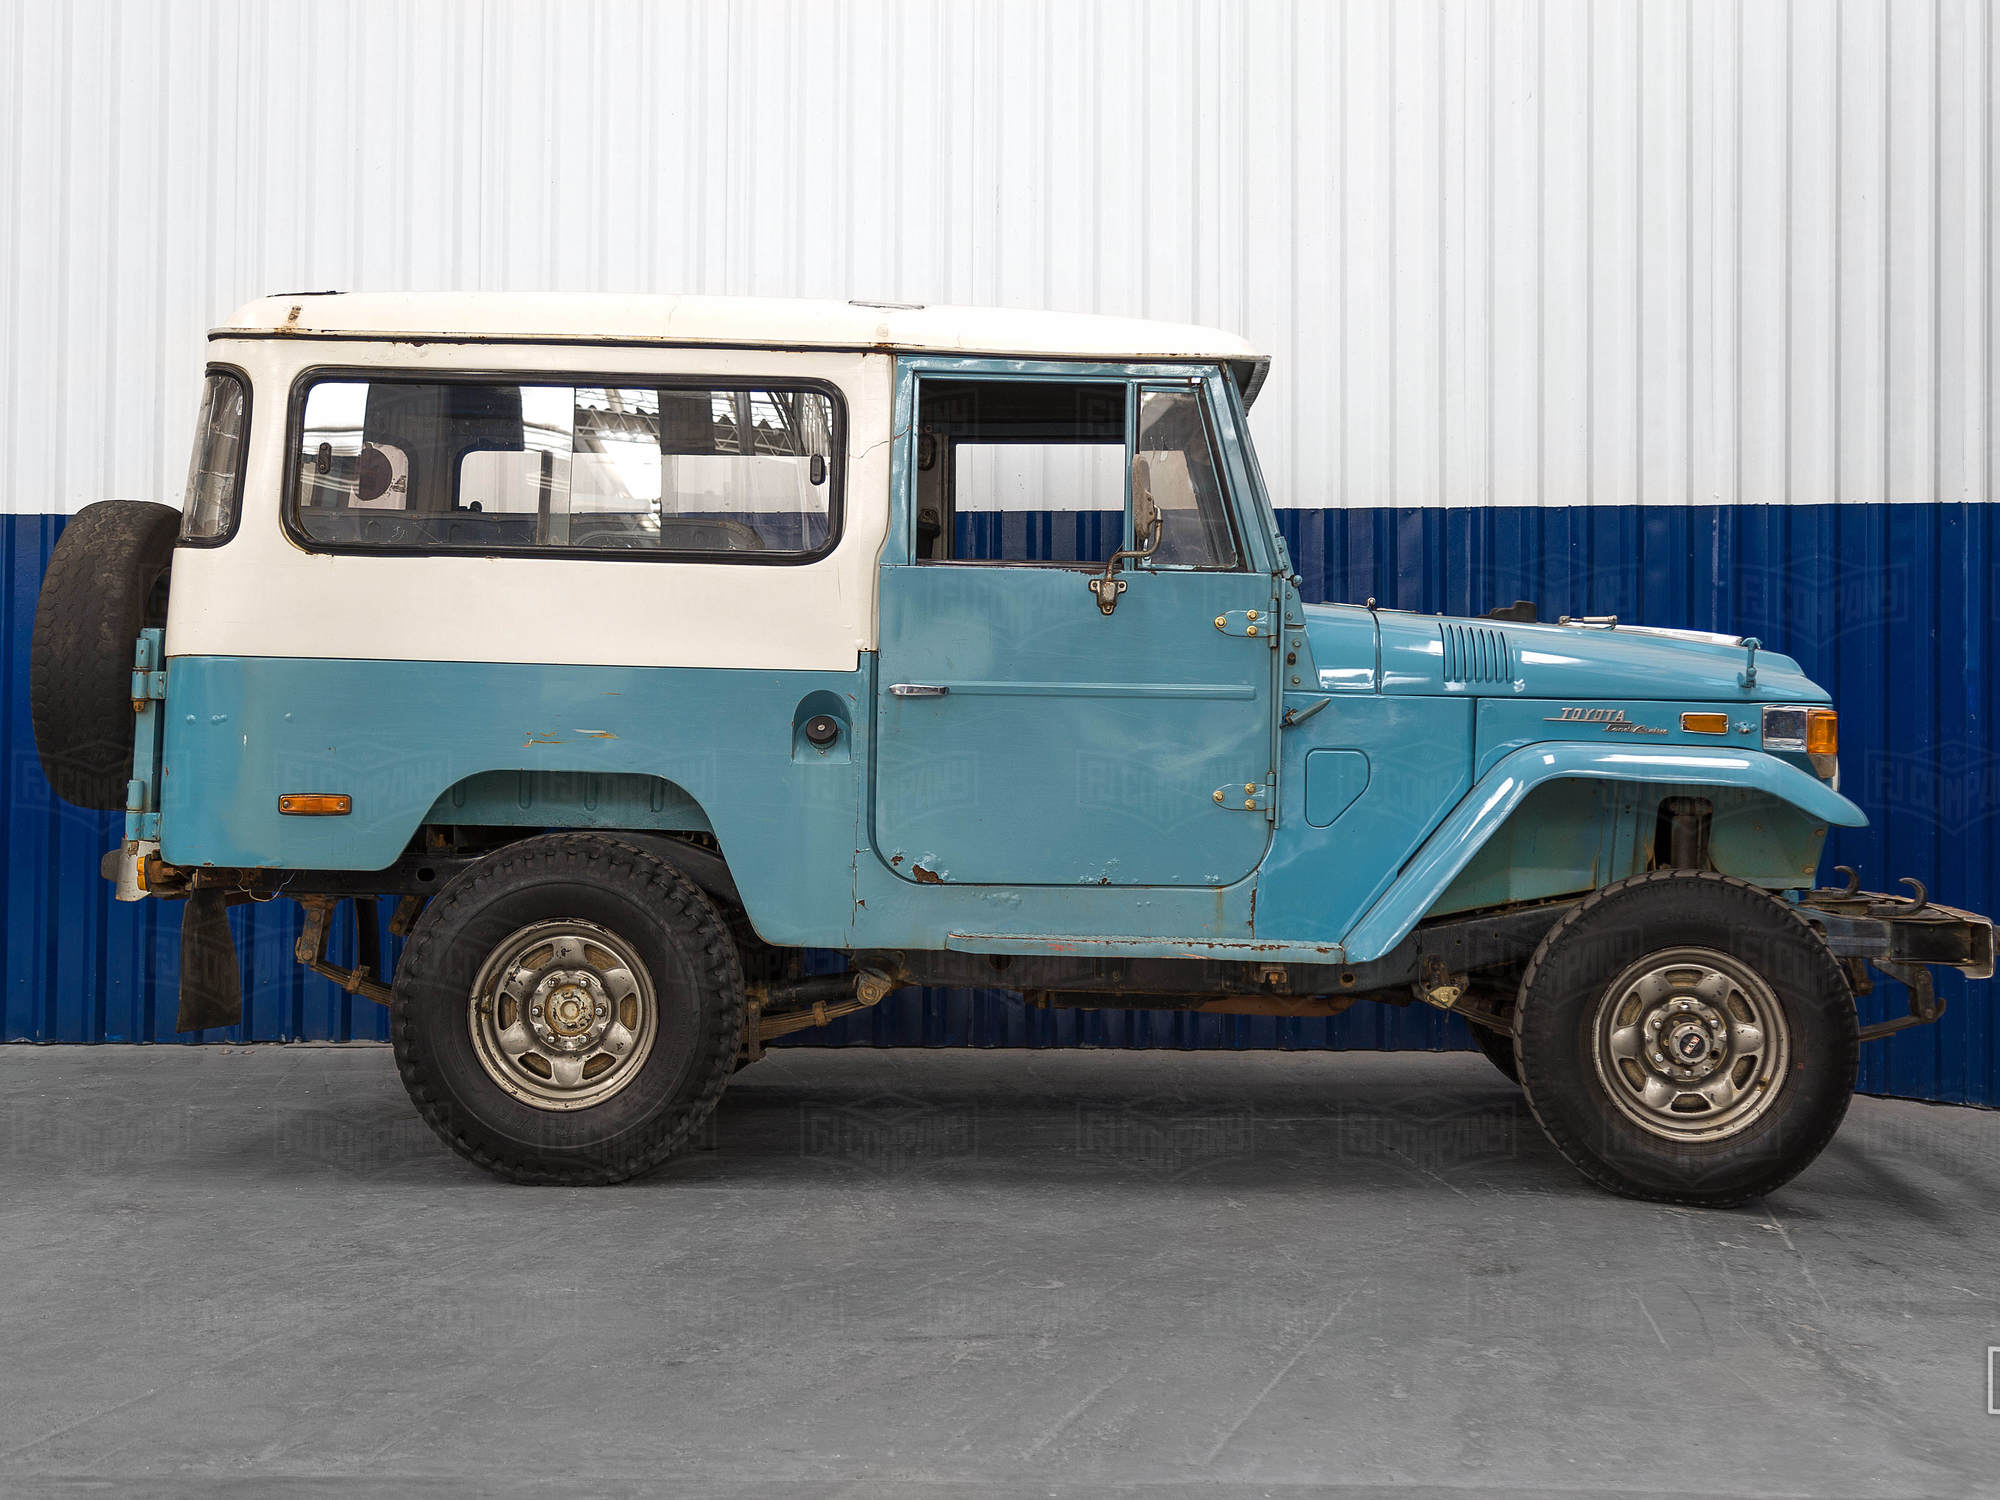 An amazing color combination will make this FJ43 one of our best yet